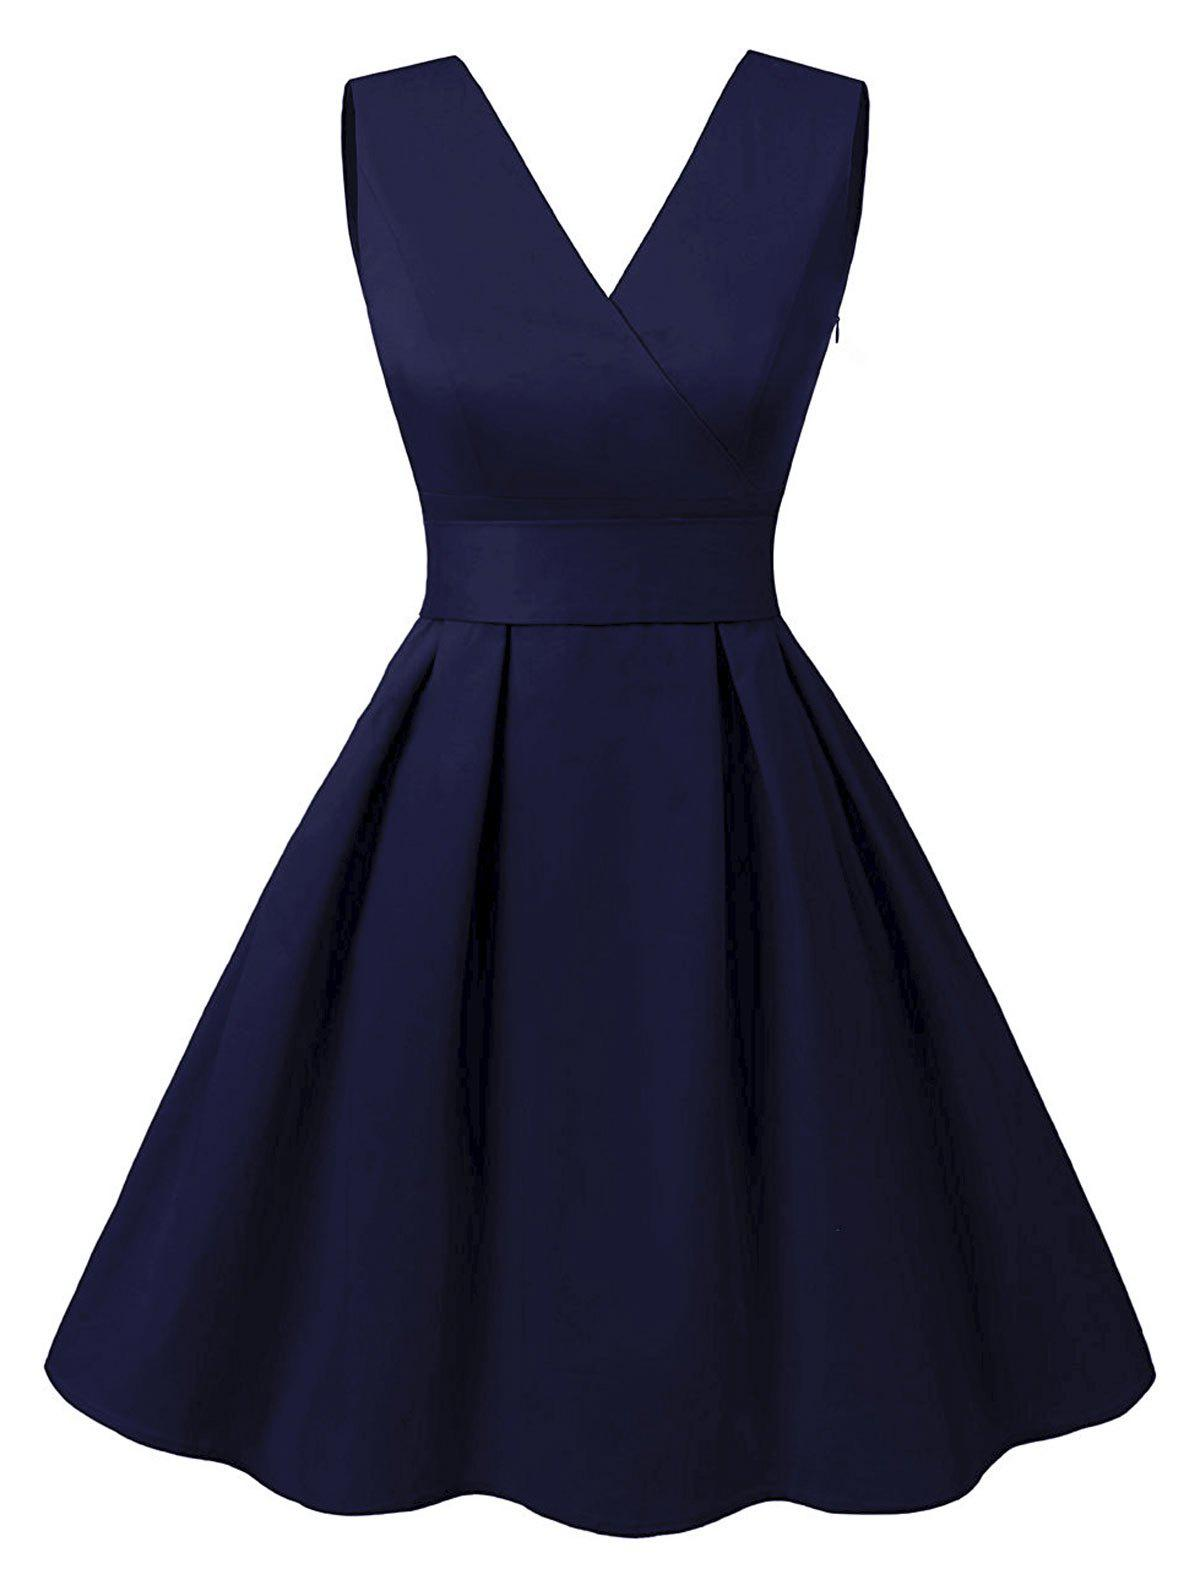 Unique Cut Out V Neck Vintage Pin Up Dress